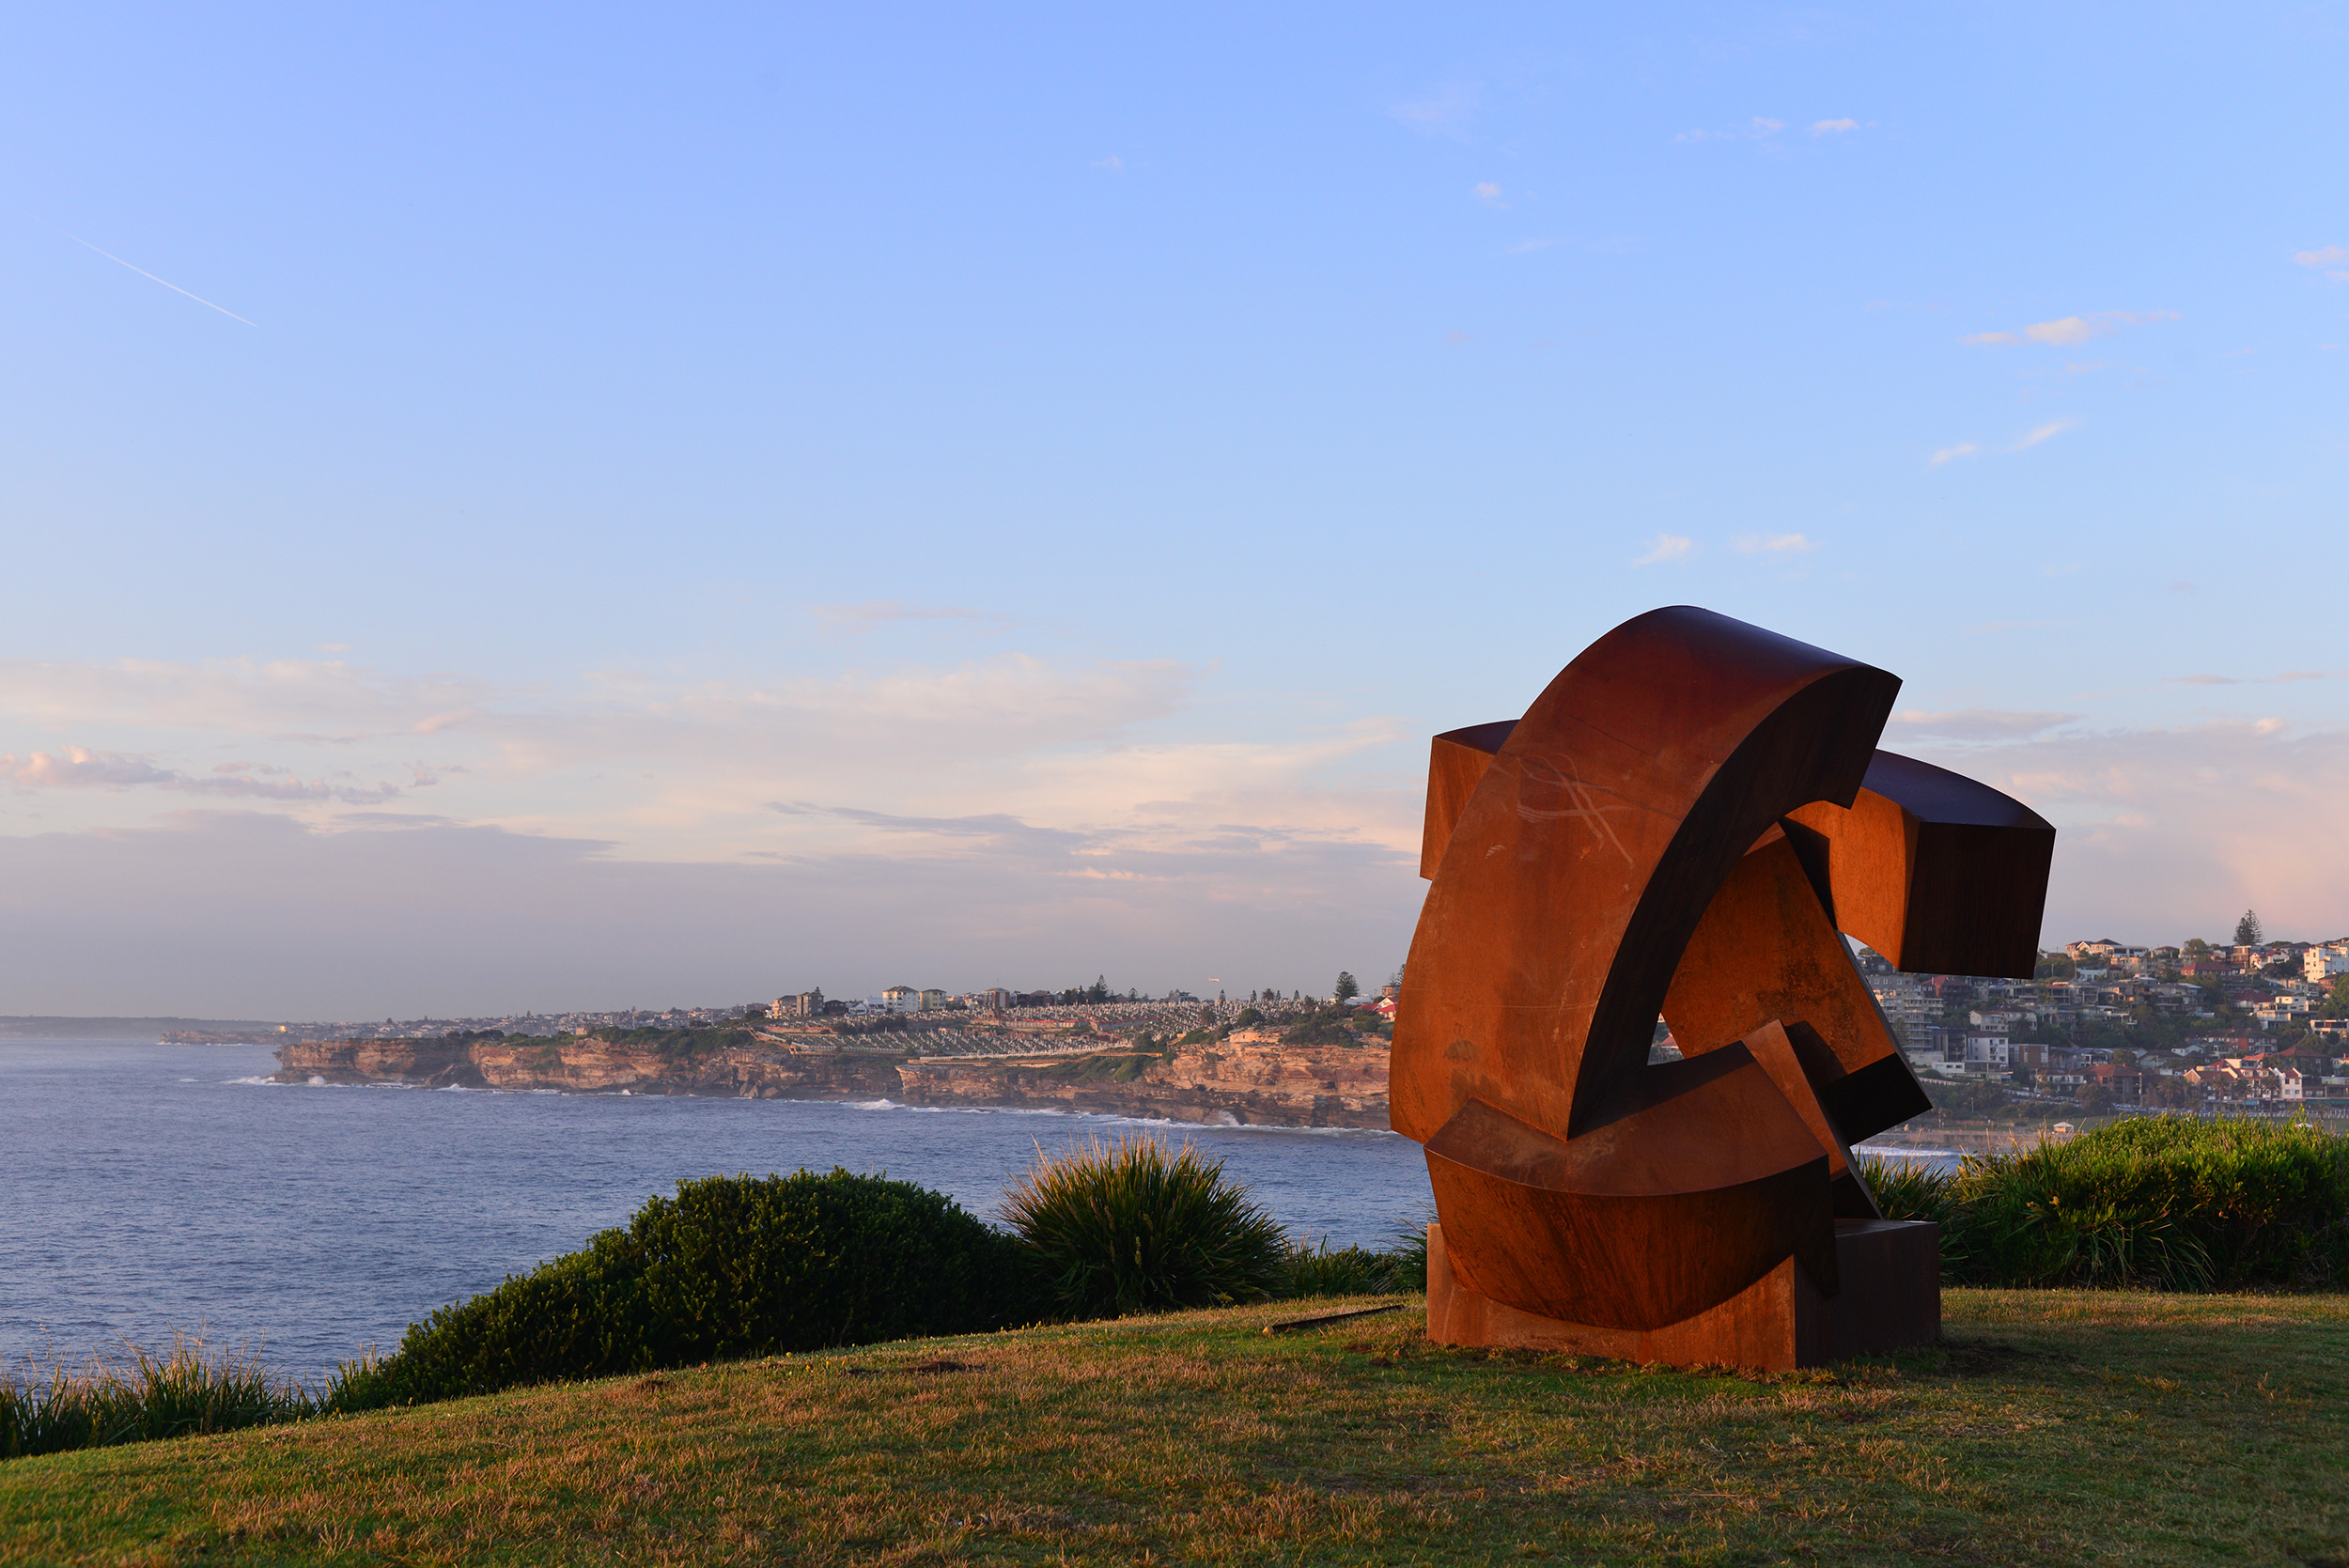 Jörg Plickat (Germany), divided planet, Sculpture by the Sea, Bondi 2015. Photo Clyde Yee